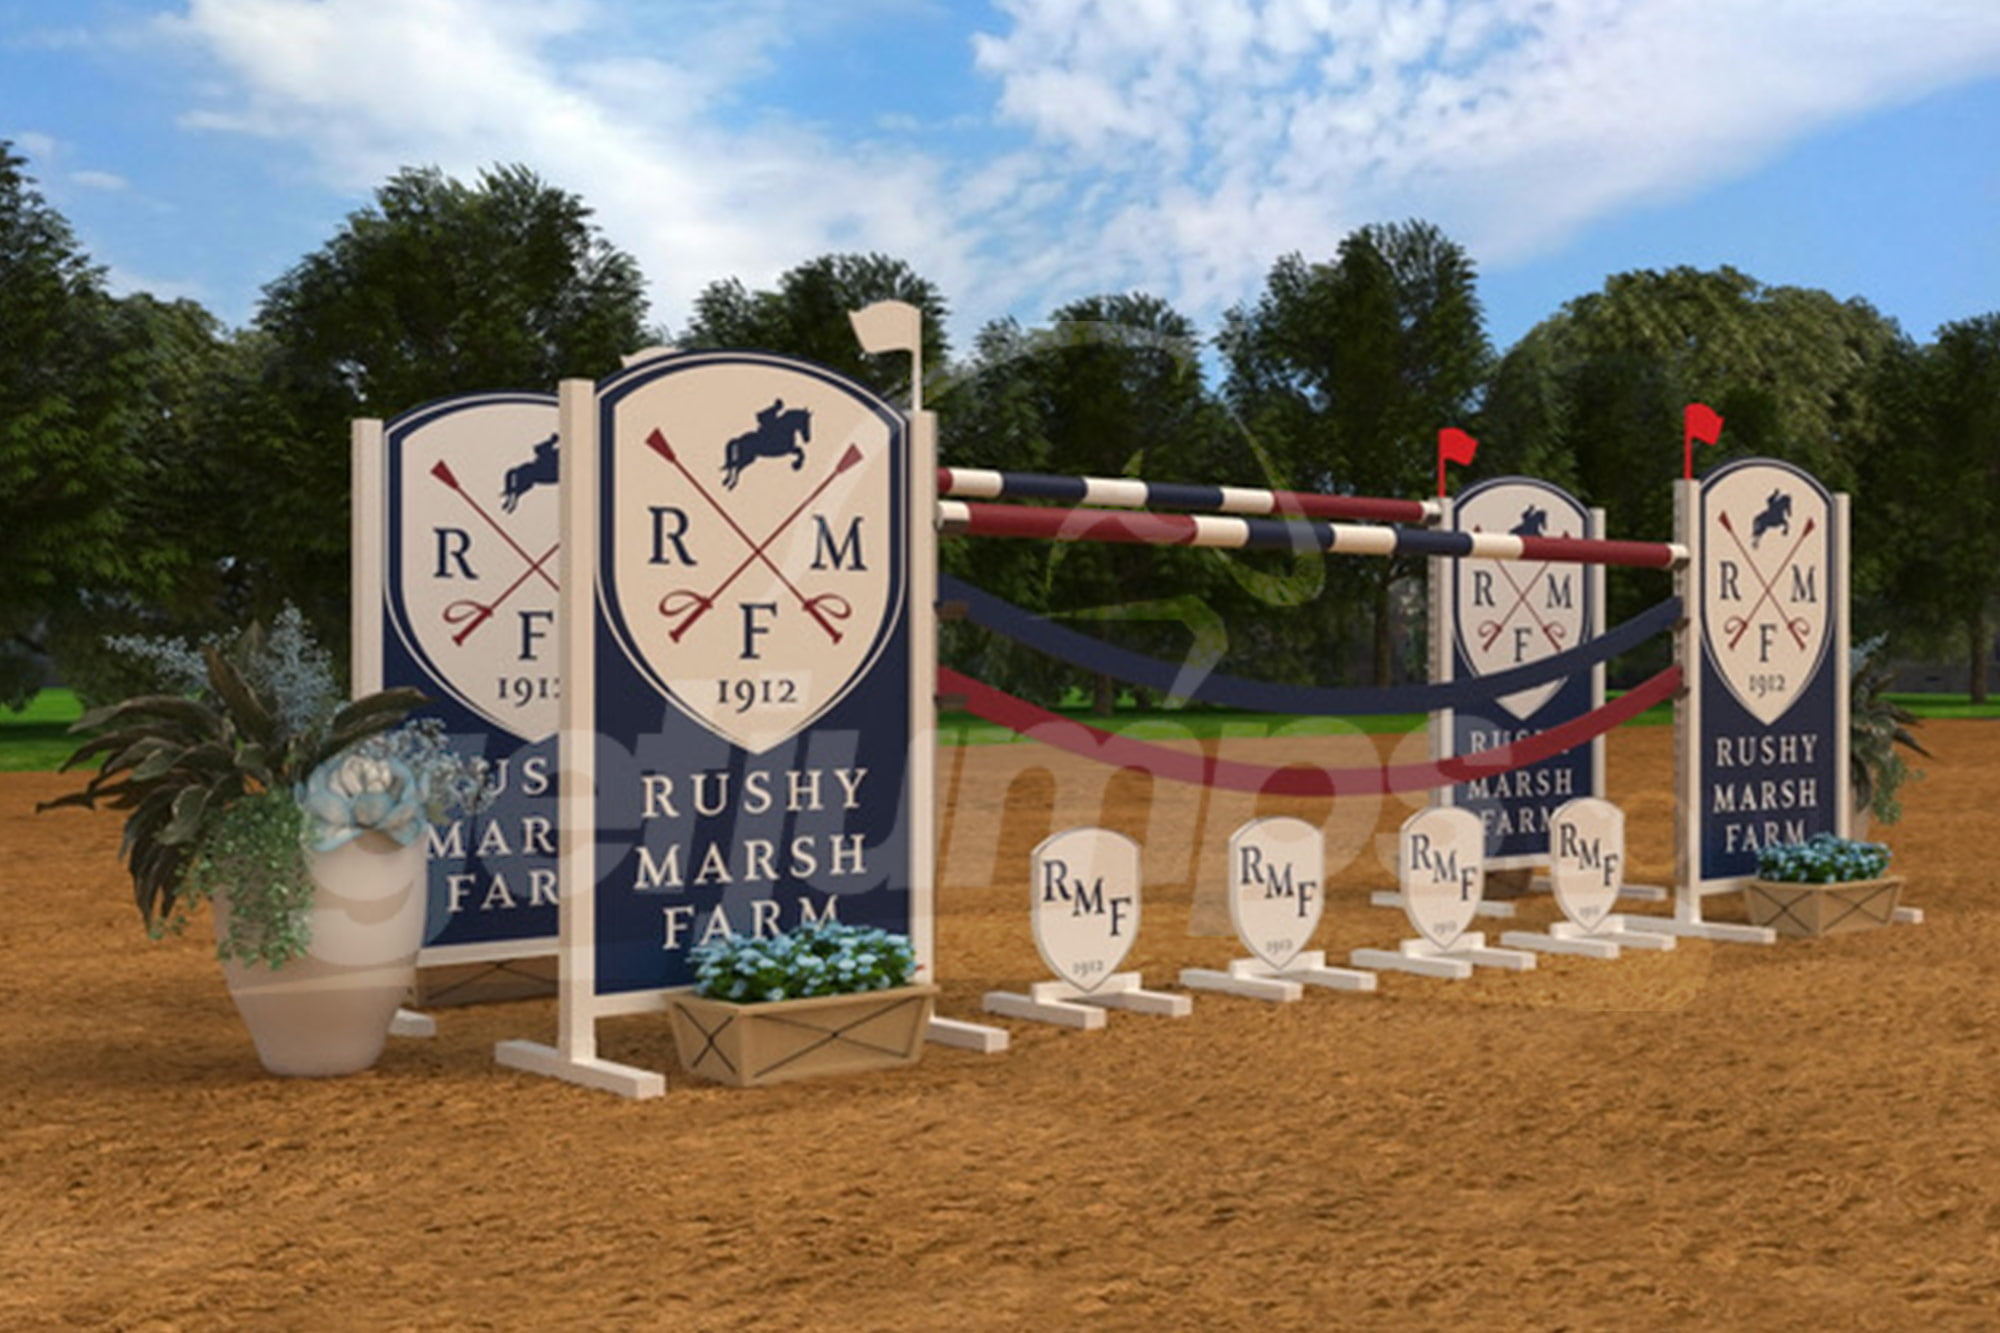 Rushy Marsh Farm themed corporate sponsor horse jump